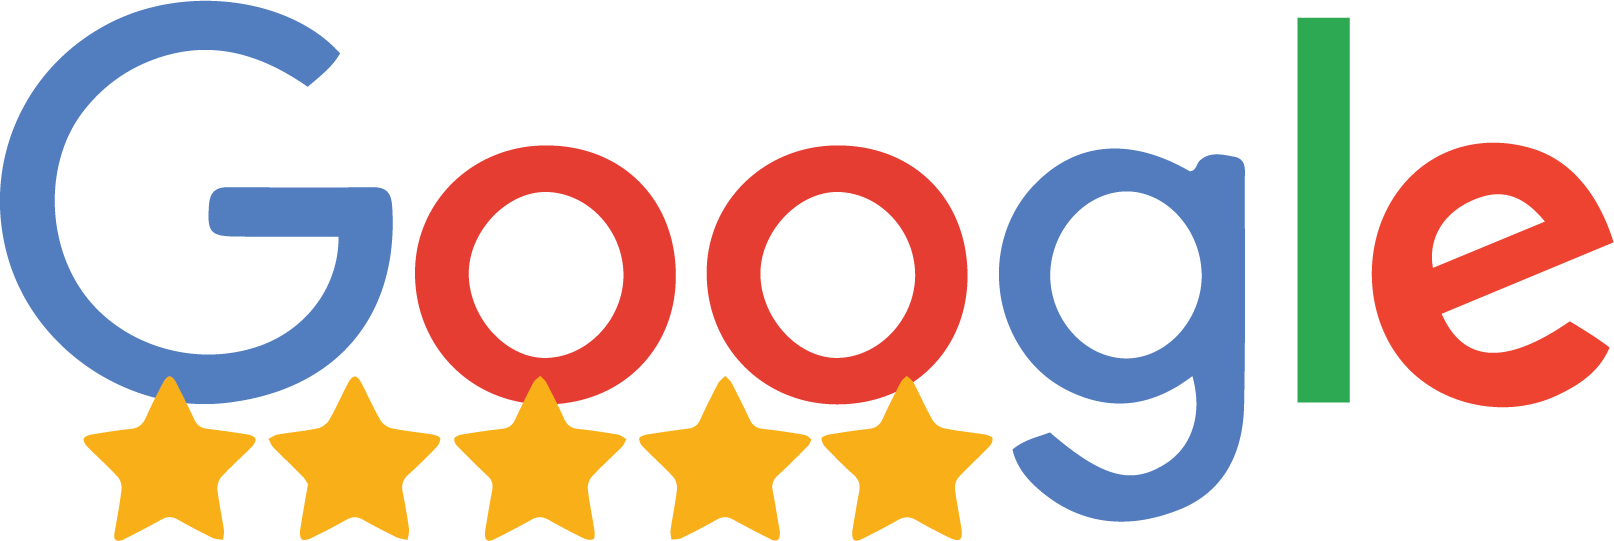 Google approved